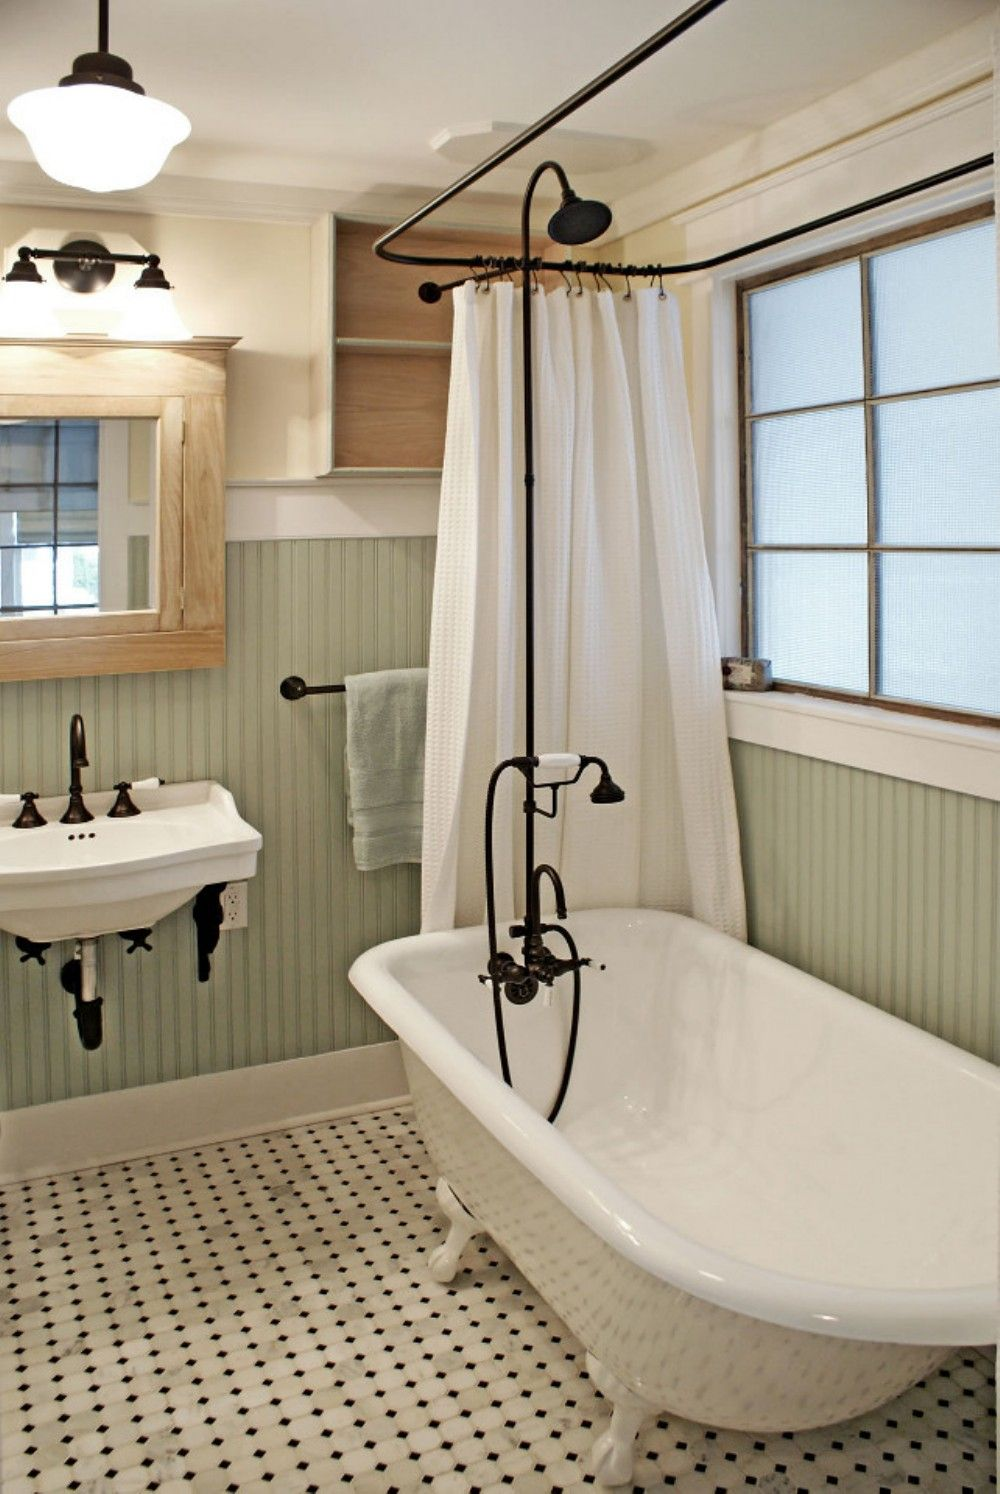 23 Amazing Ideas About Vintage Bathroom Vintage Bathroom Decor